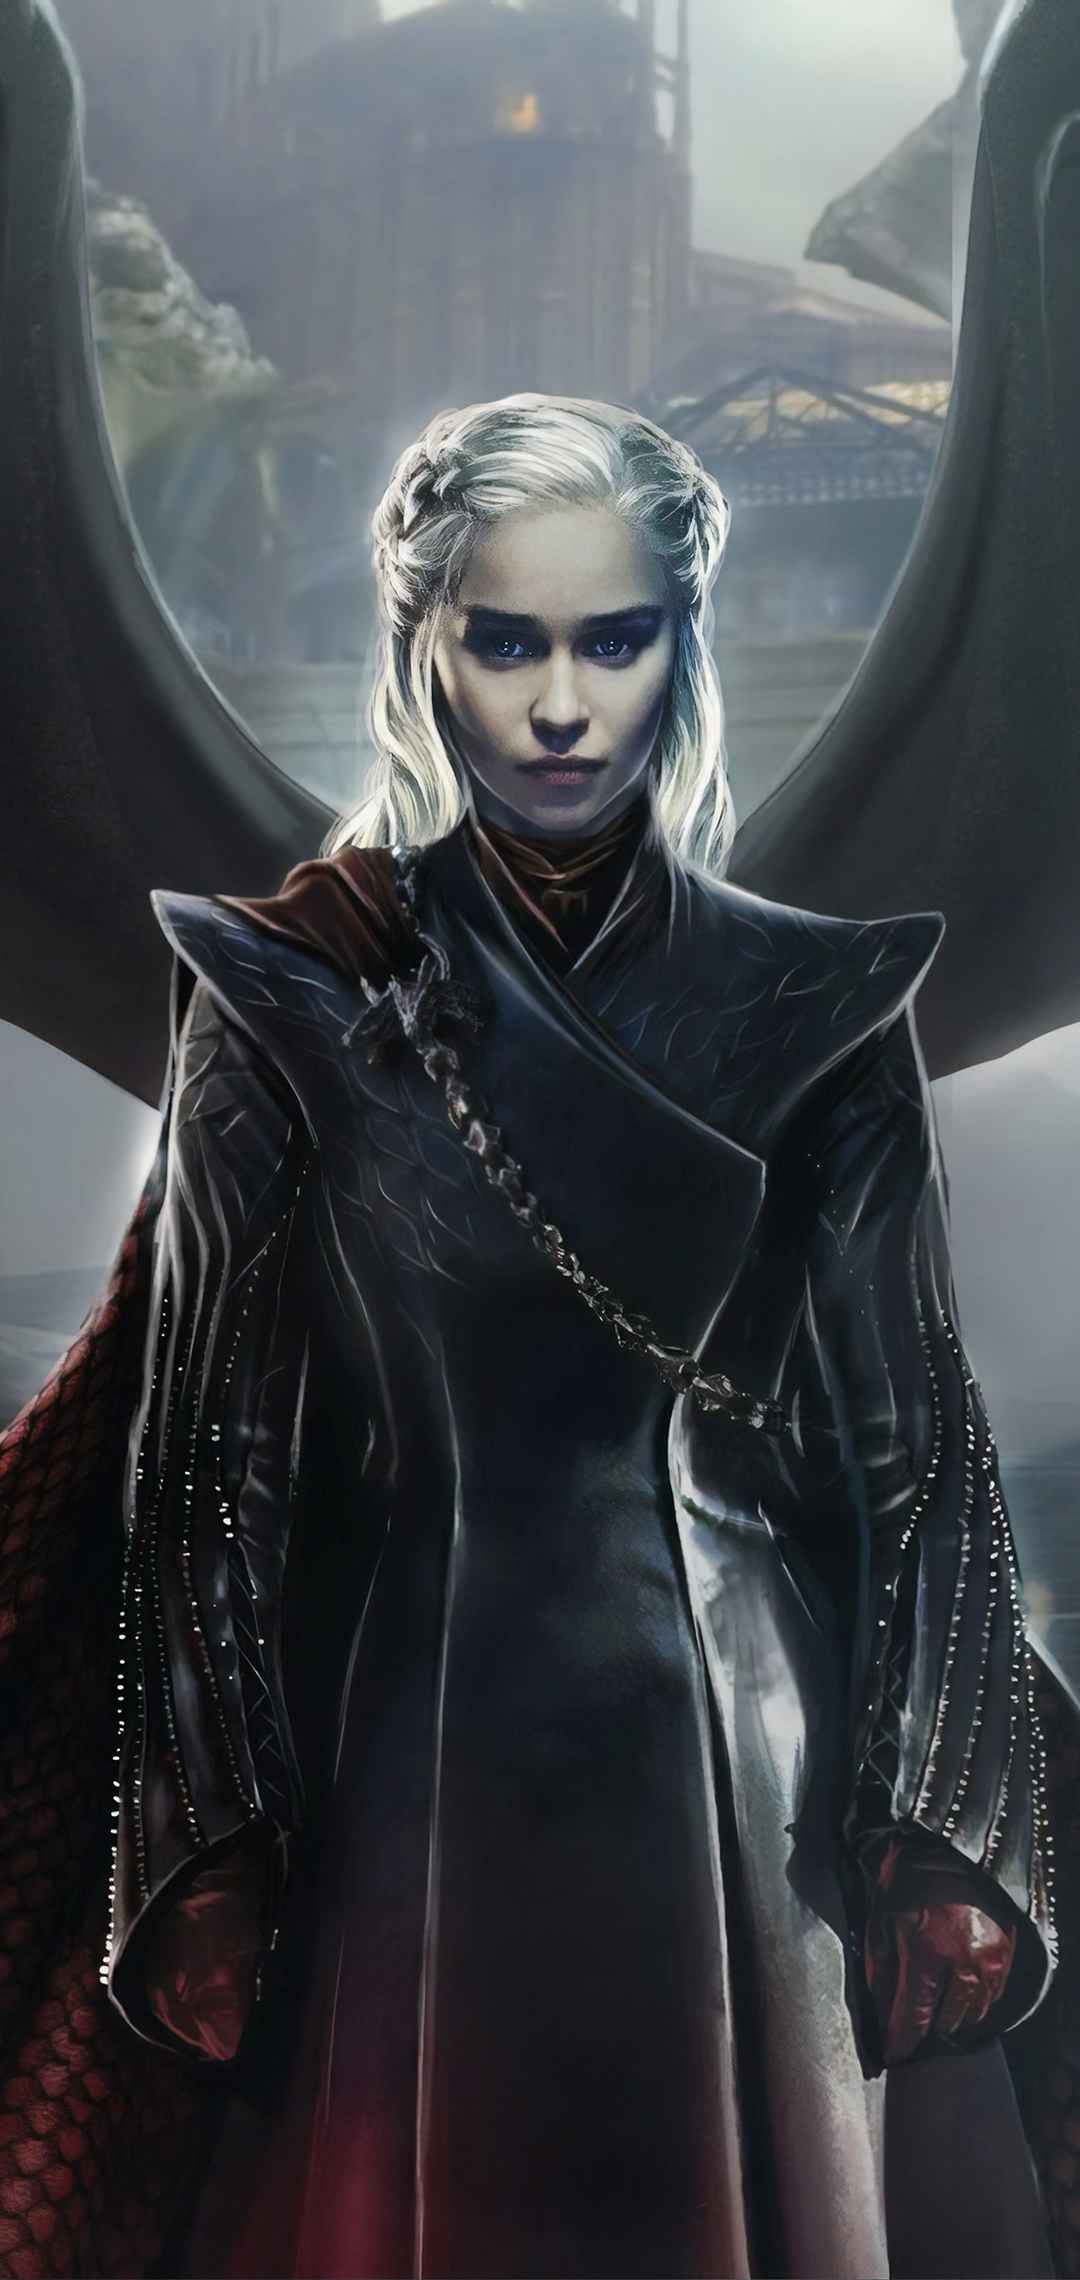 Daenerys Targaryen Game Of Thrones | Mobile Wallpaper - HD ...